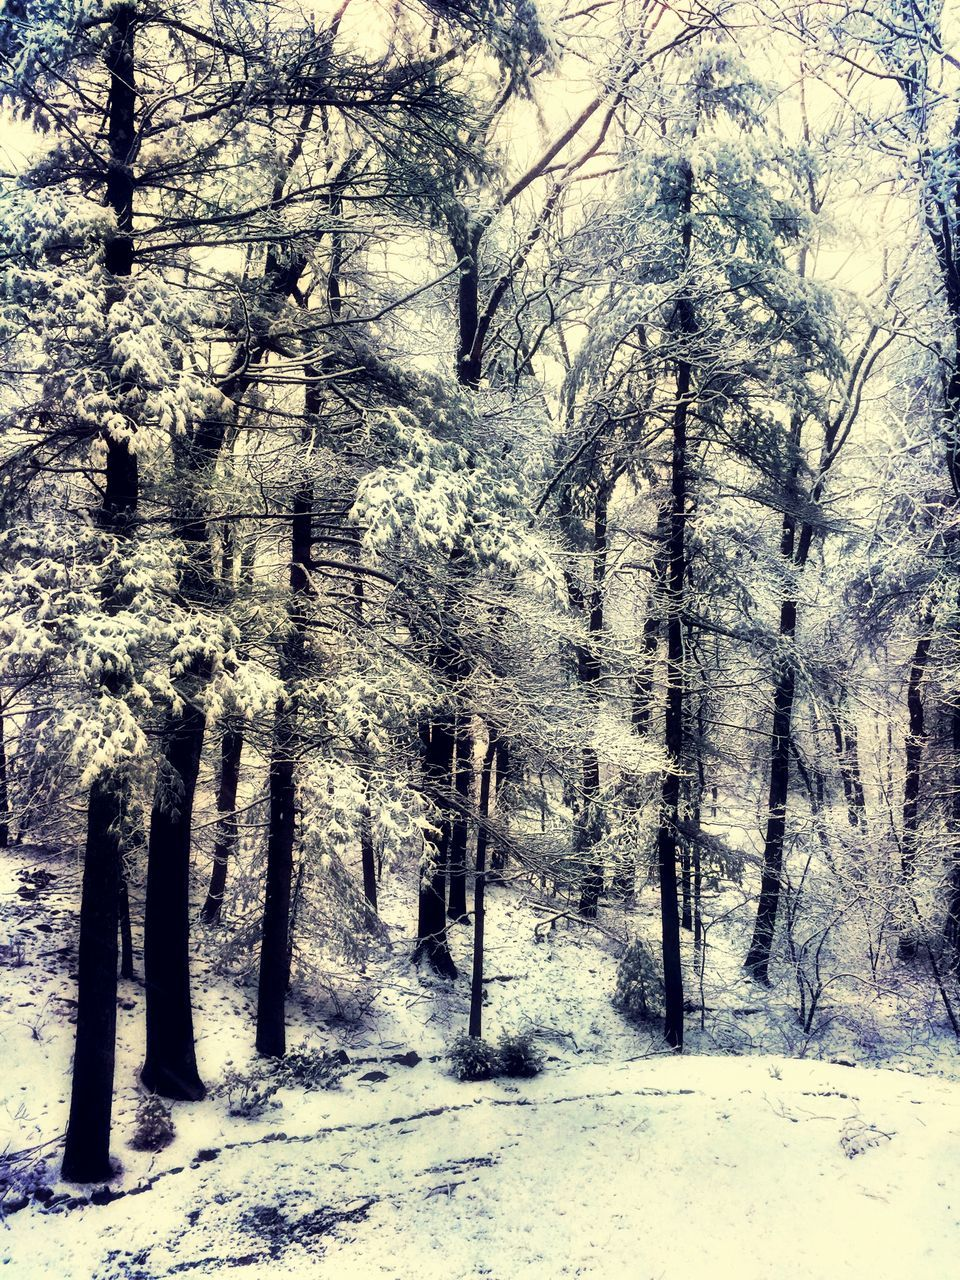 tree, nature, forest, tranquility, tree trunk, no people, tranquil scene, day, cold temperature, snow, beauty in nature, landscape, scenics, winter, outdoors, bare tree